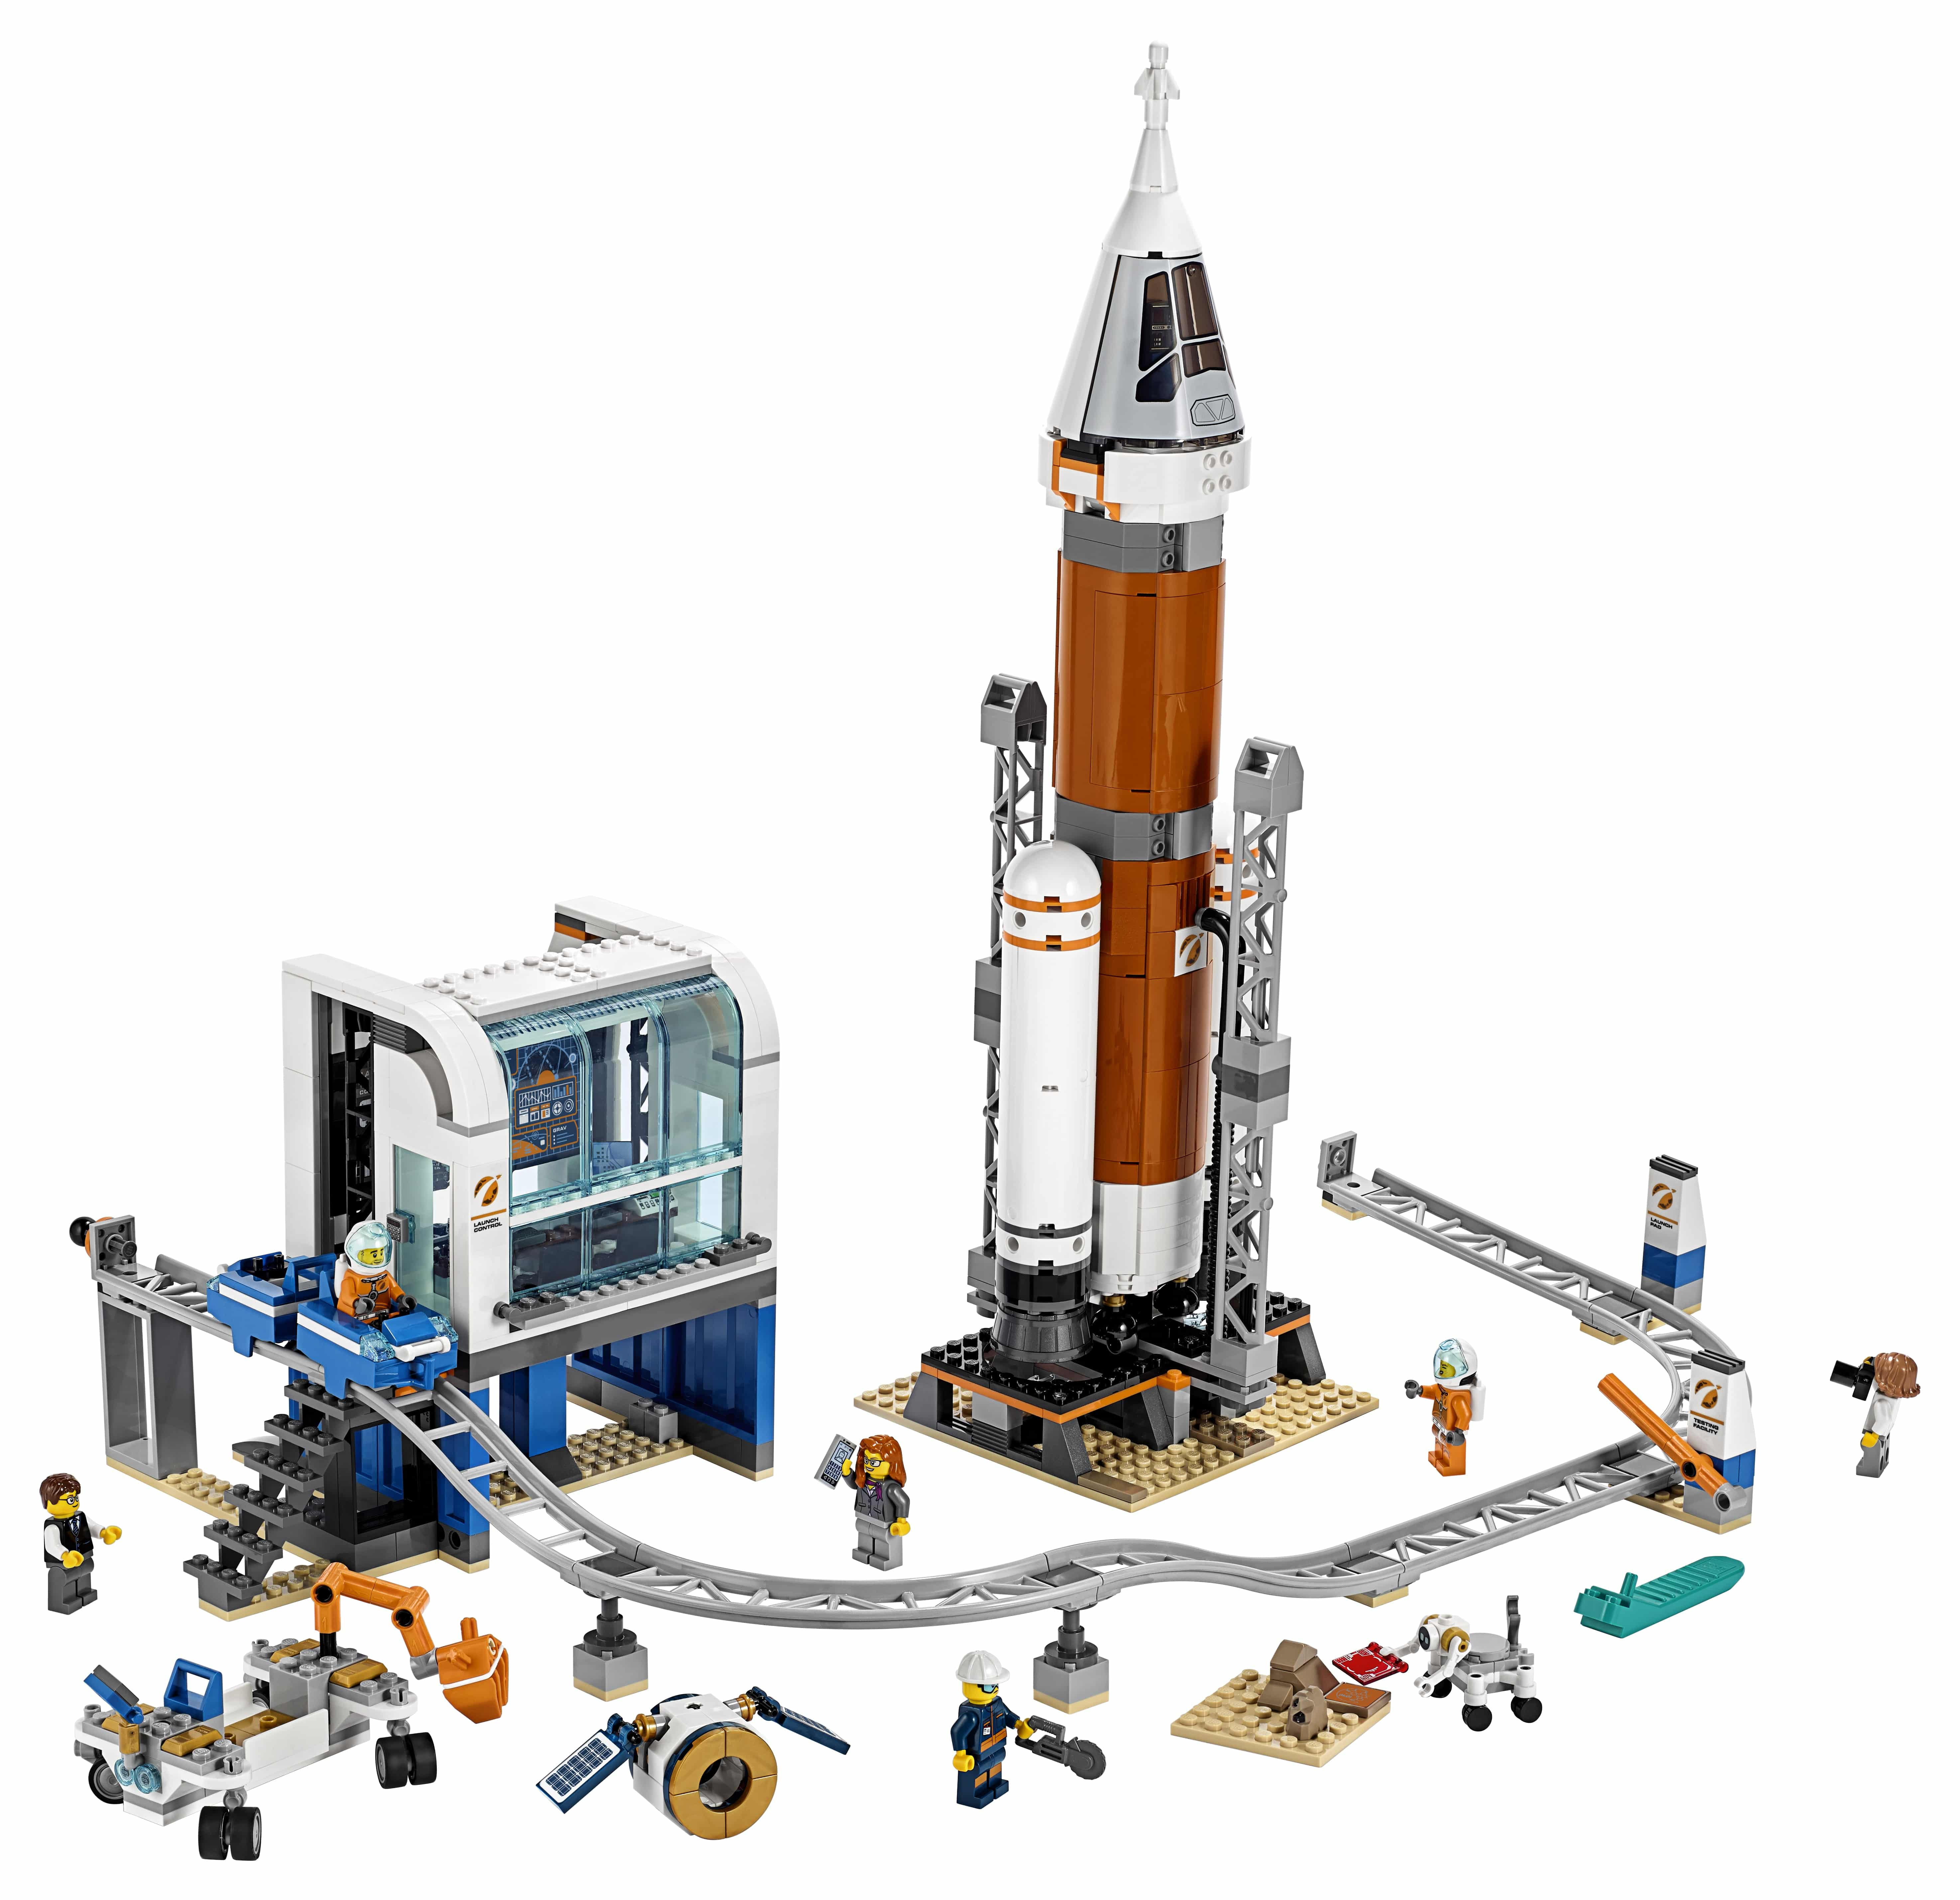 60228-City-Deep-Space-Rocket-and-Launch-Control